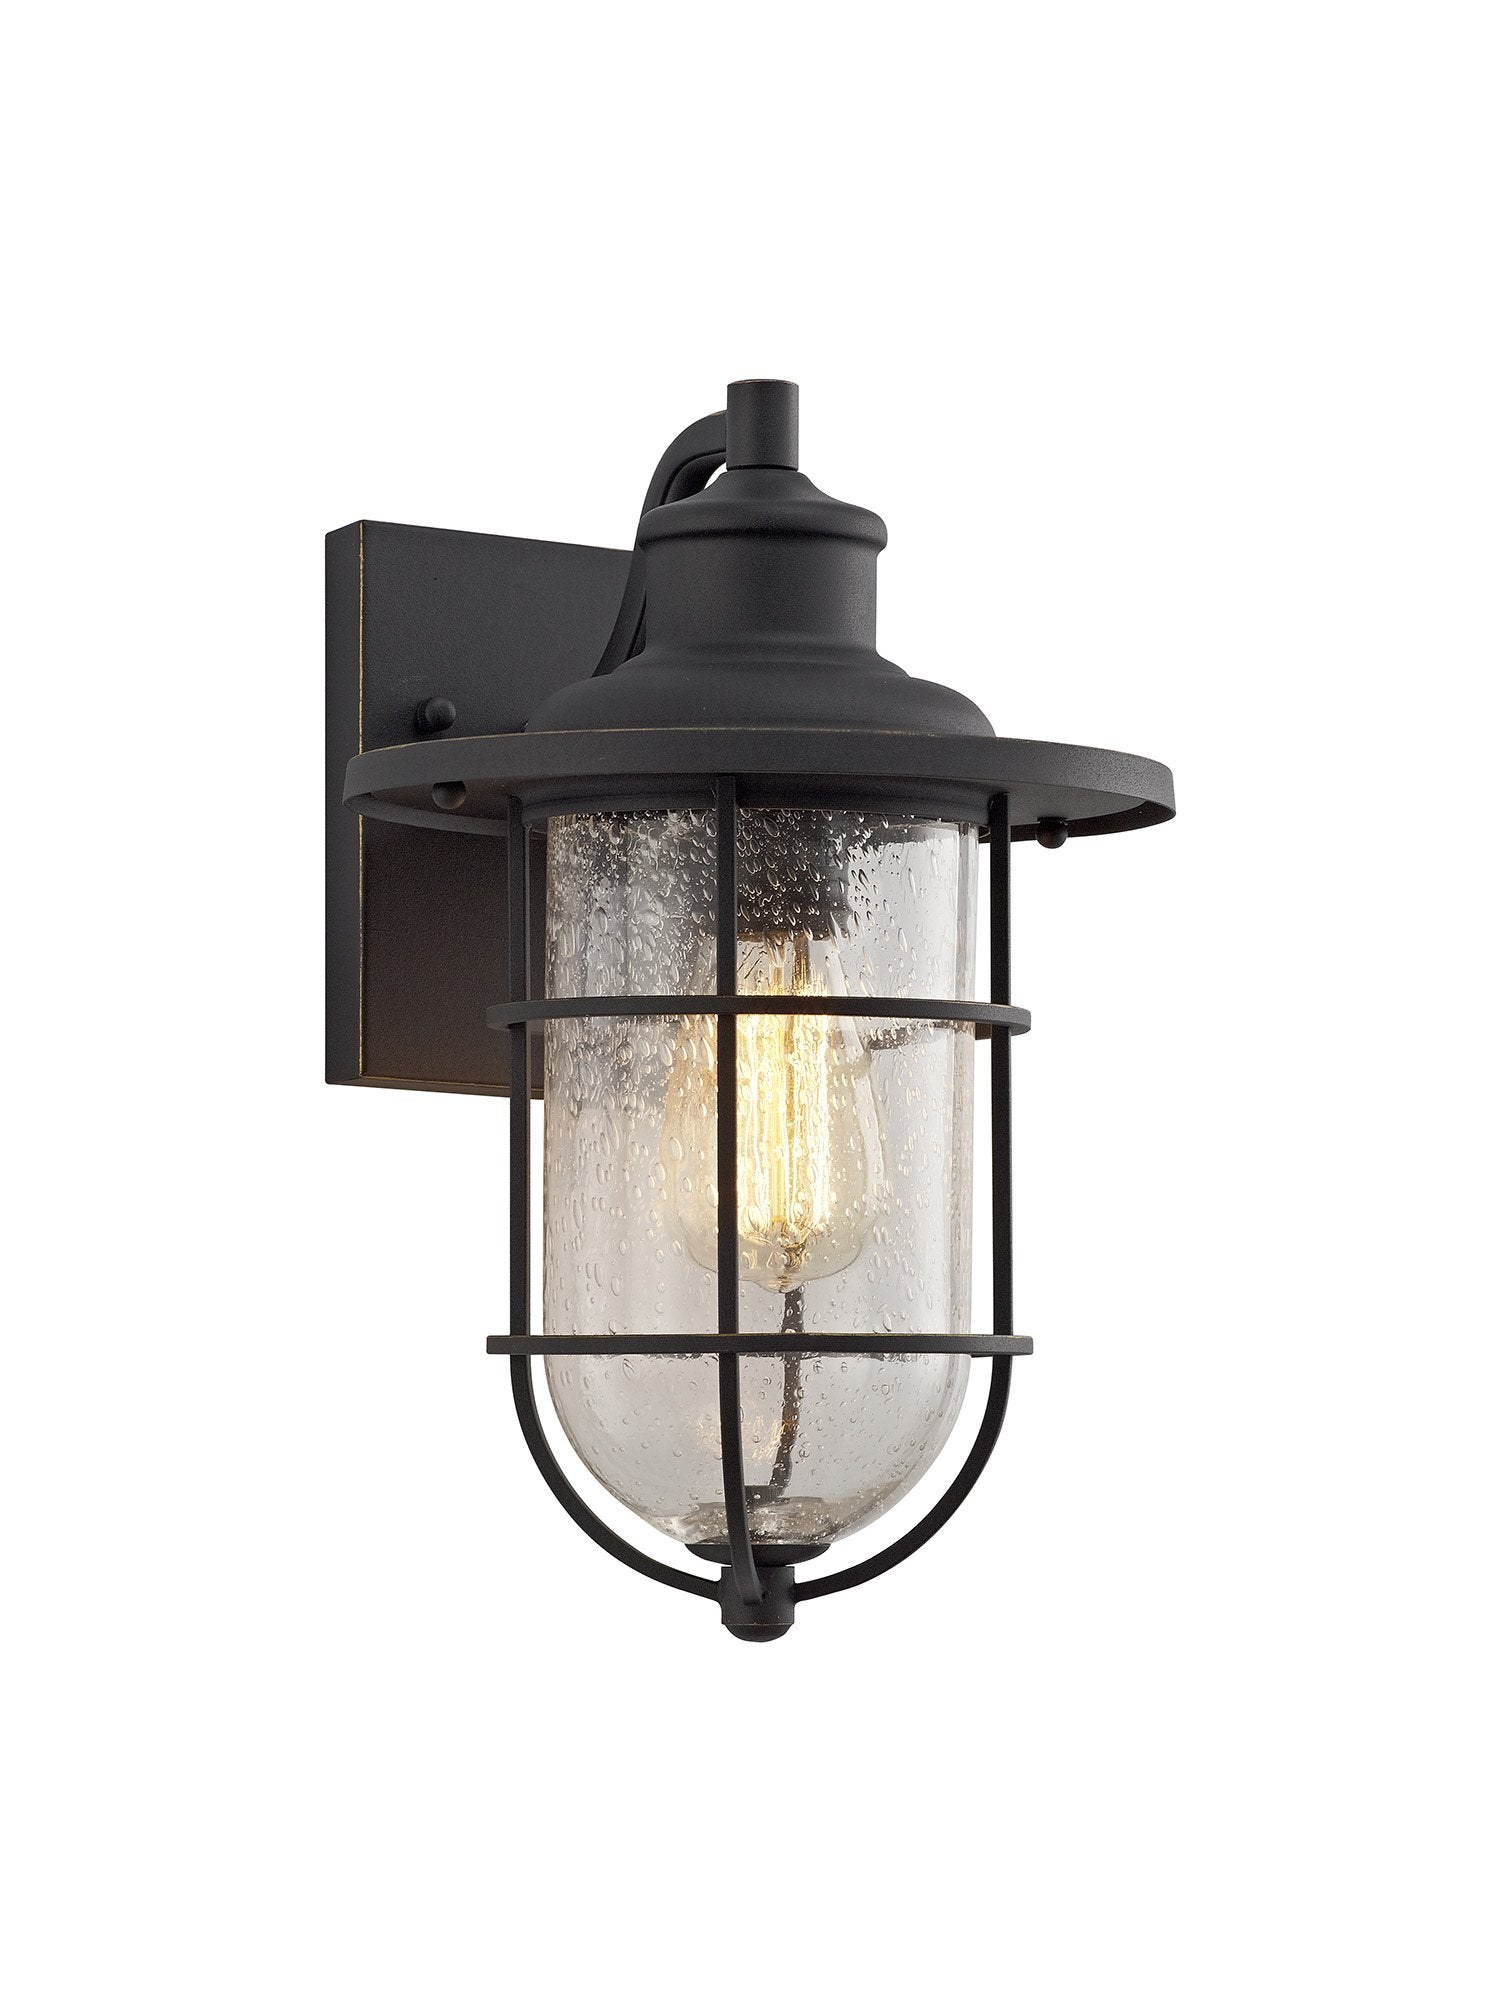 TRAWLER Wall Lamp, 1 x E27, Black/Gold With Seeded Clear Glass, IP54, 2yrs Warranty (2LT325A)